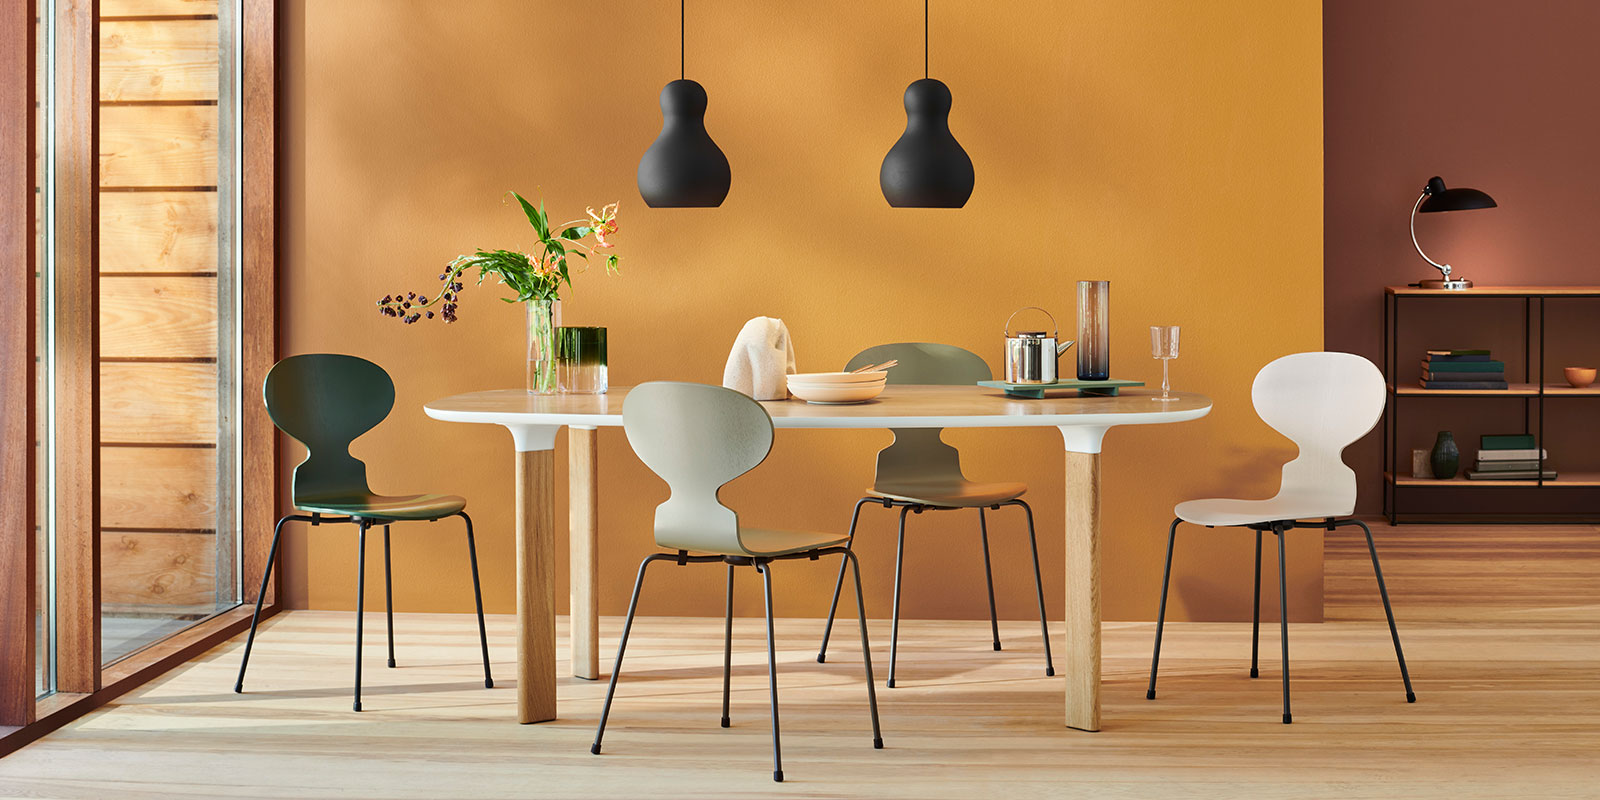 Papillon Interiors Dining Furniture - Fritz Hansen Ant Chairs & Analog Table